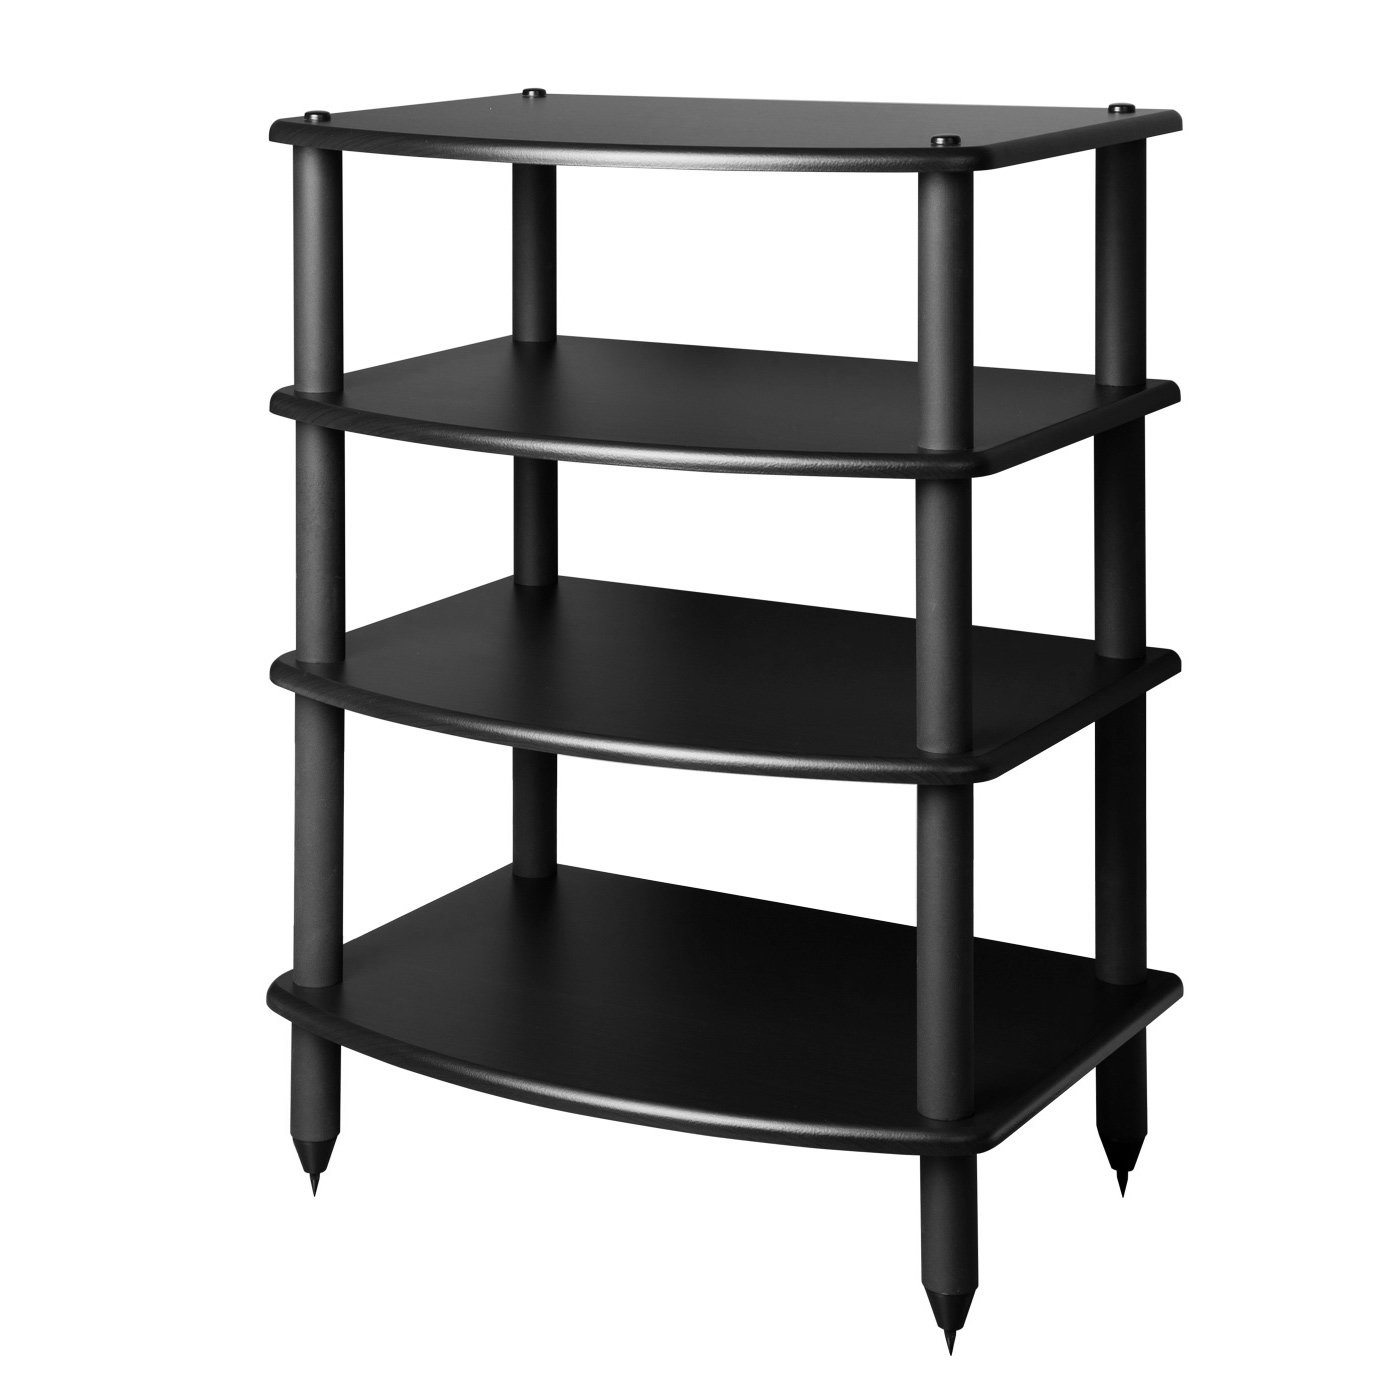 Amazon.com: Pangea Audio Vulcan Four Shelf Audio Rack (Black ...